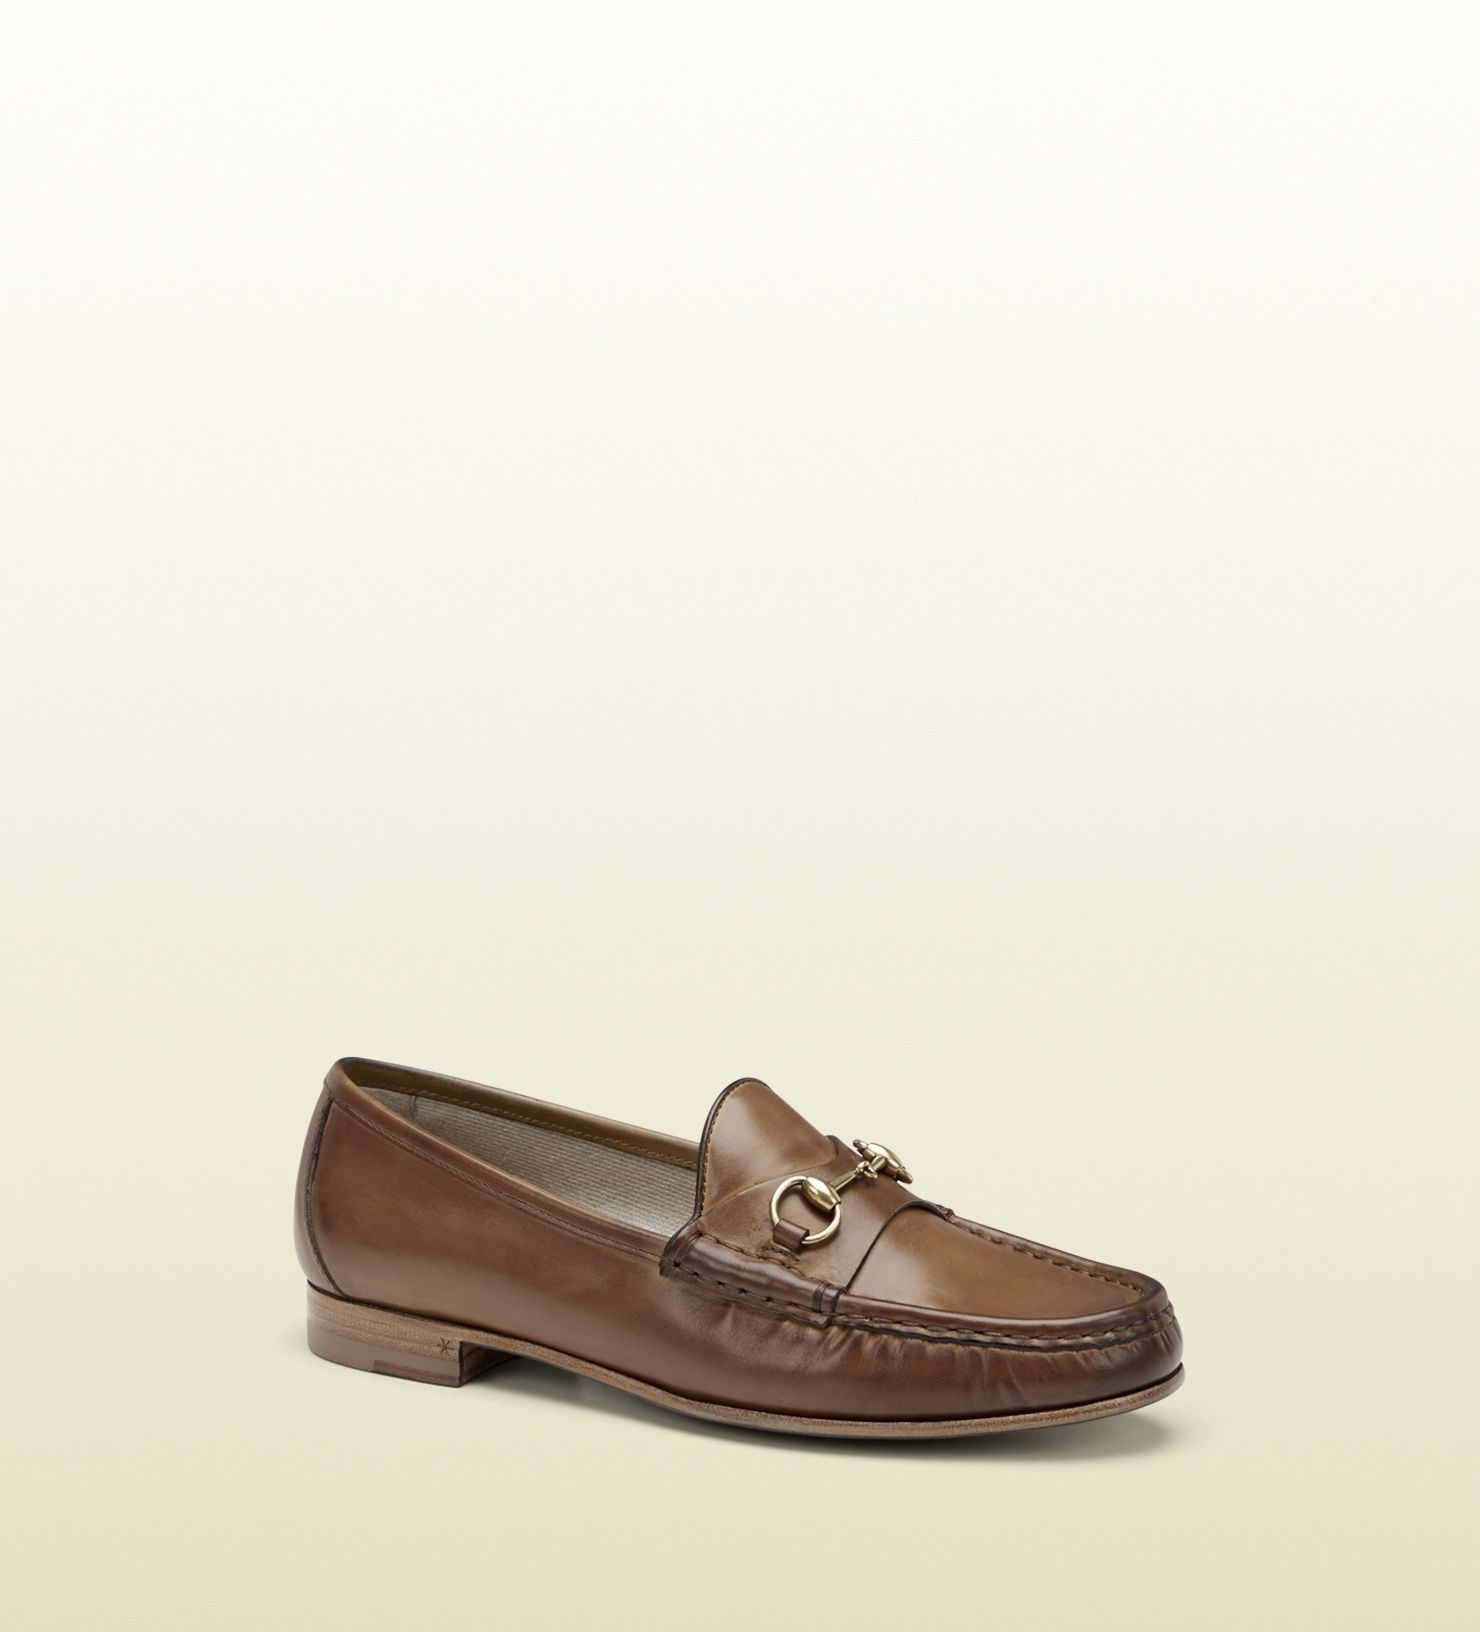 759d718fc7e 1953 horsebit loafer in leather. 1953 horsebit loafer in leather Gucci ...